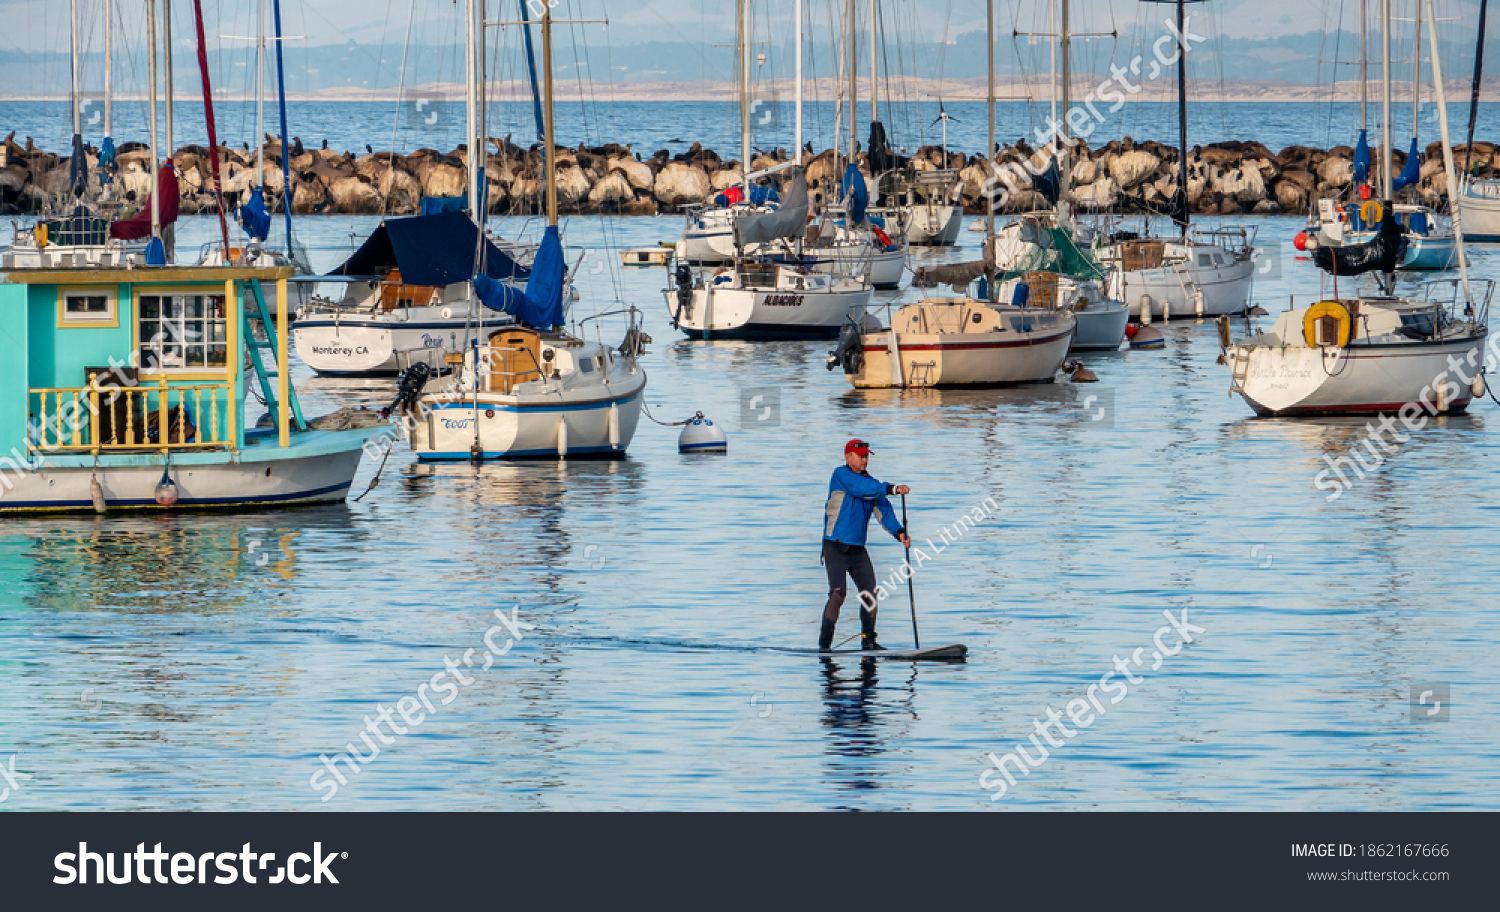 Monterey, California - November 21, 2020: A man paddles his paddleboard across the Monterey Harbor and Marina, with moored sailboats, a breakwall  with sea lions and a single dolphin in background.